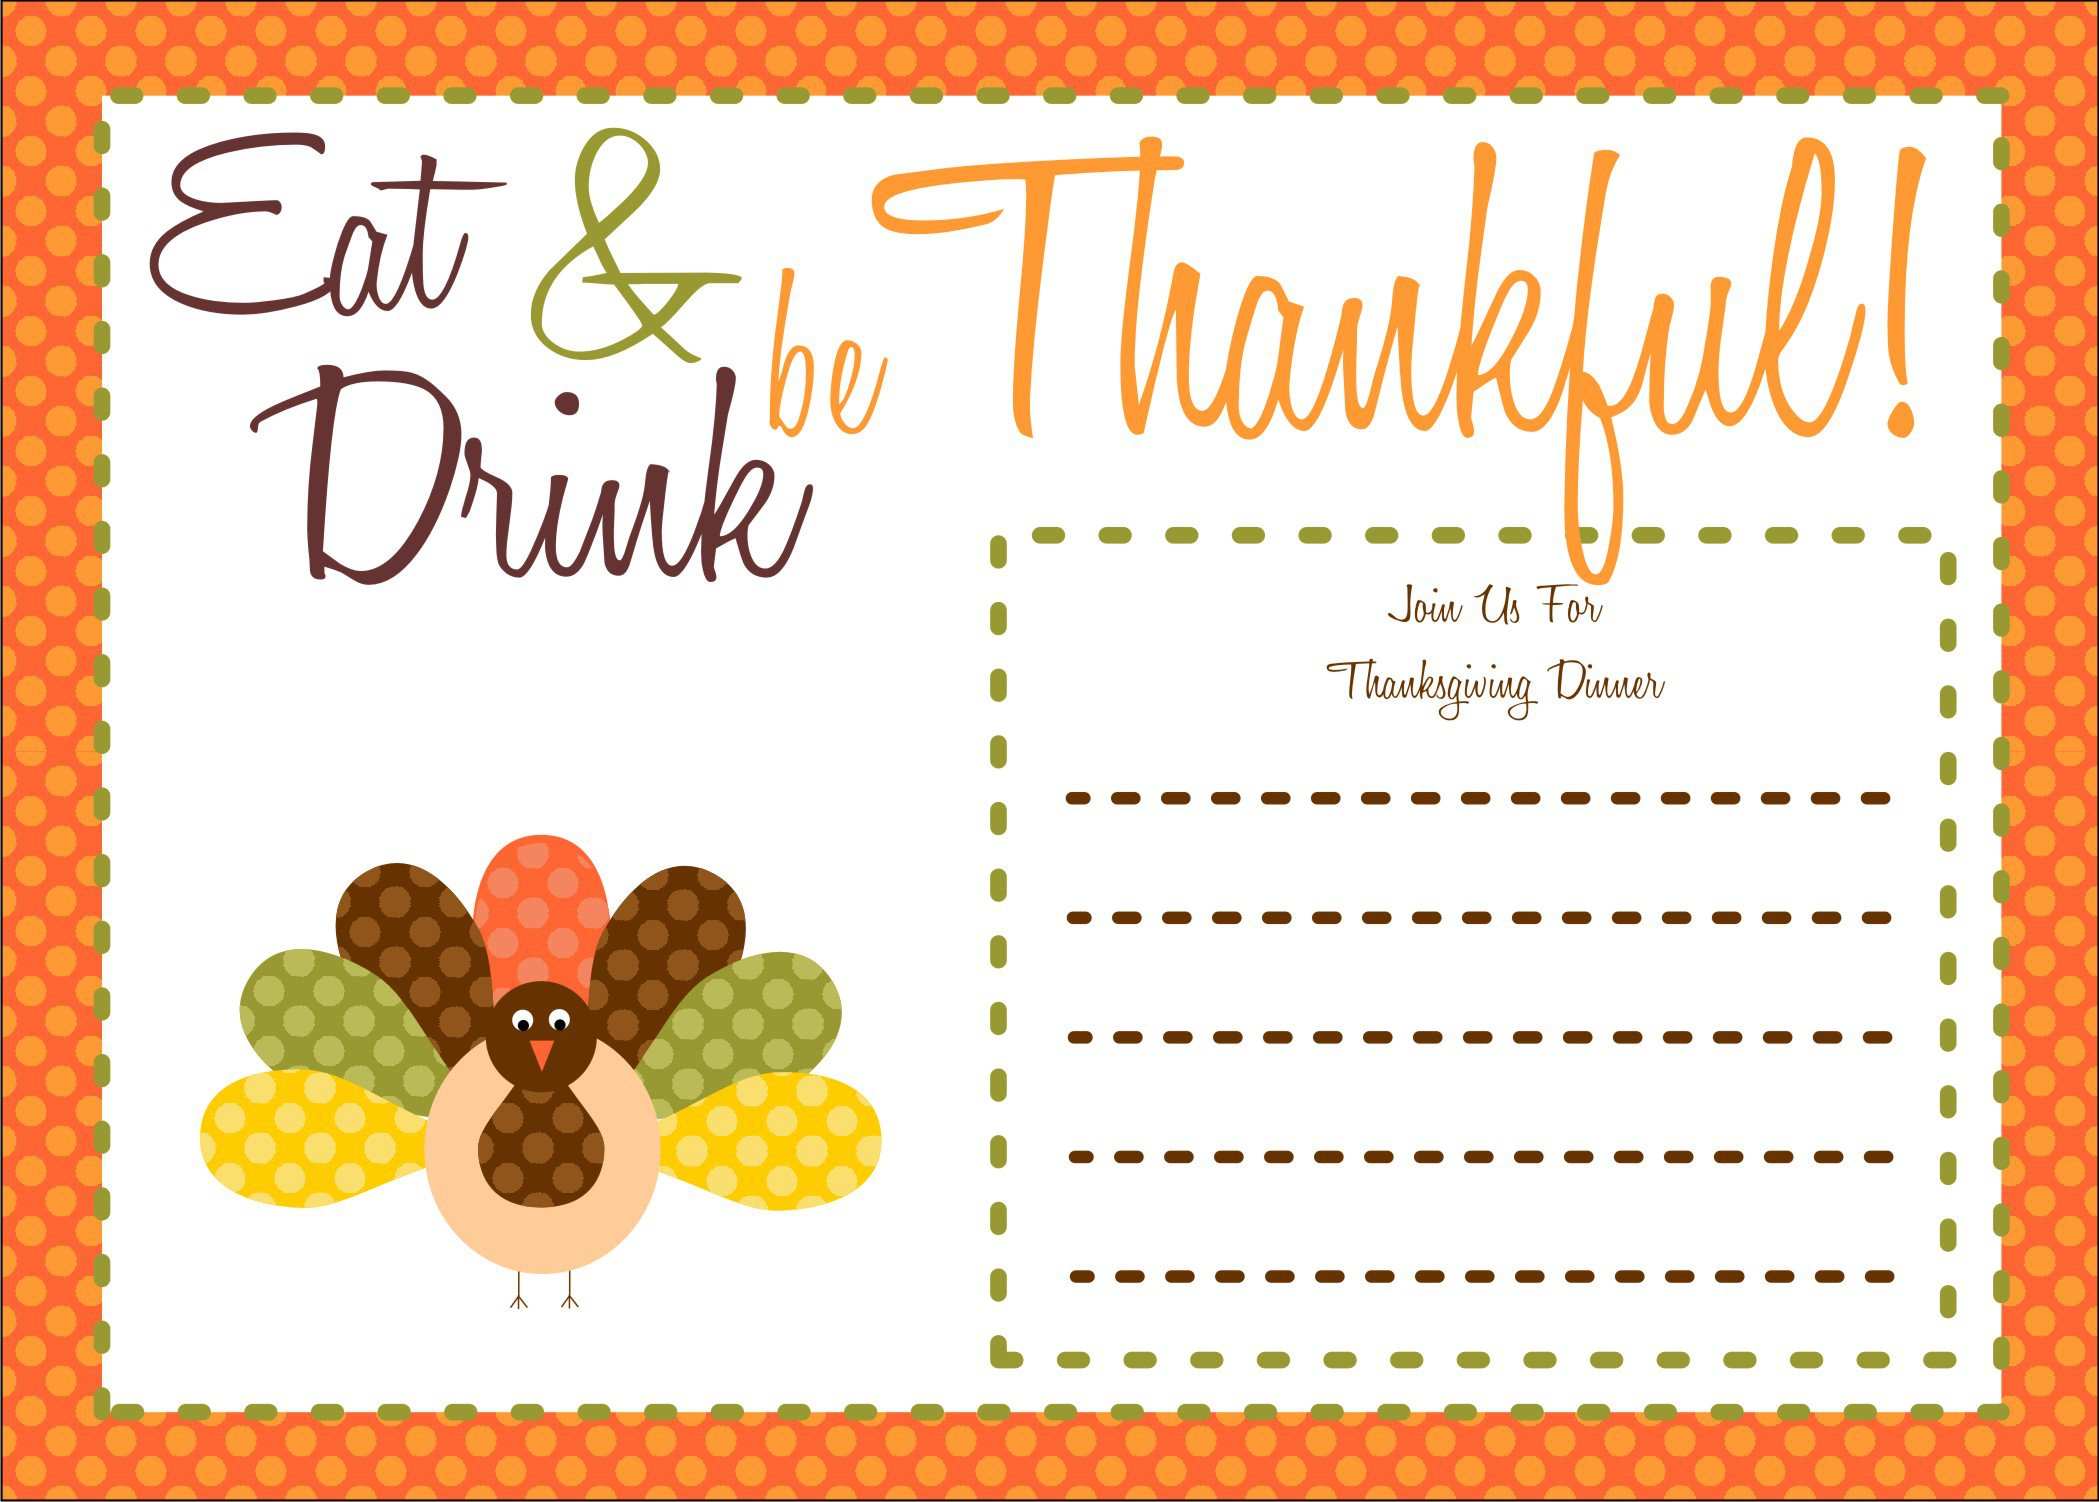 Free Thanksgiving Day Invitation Templates